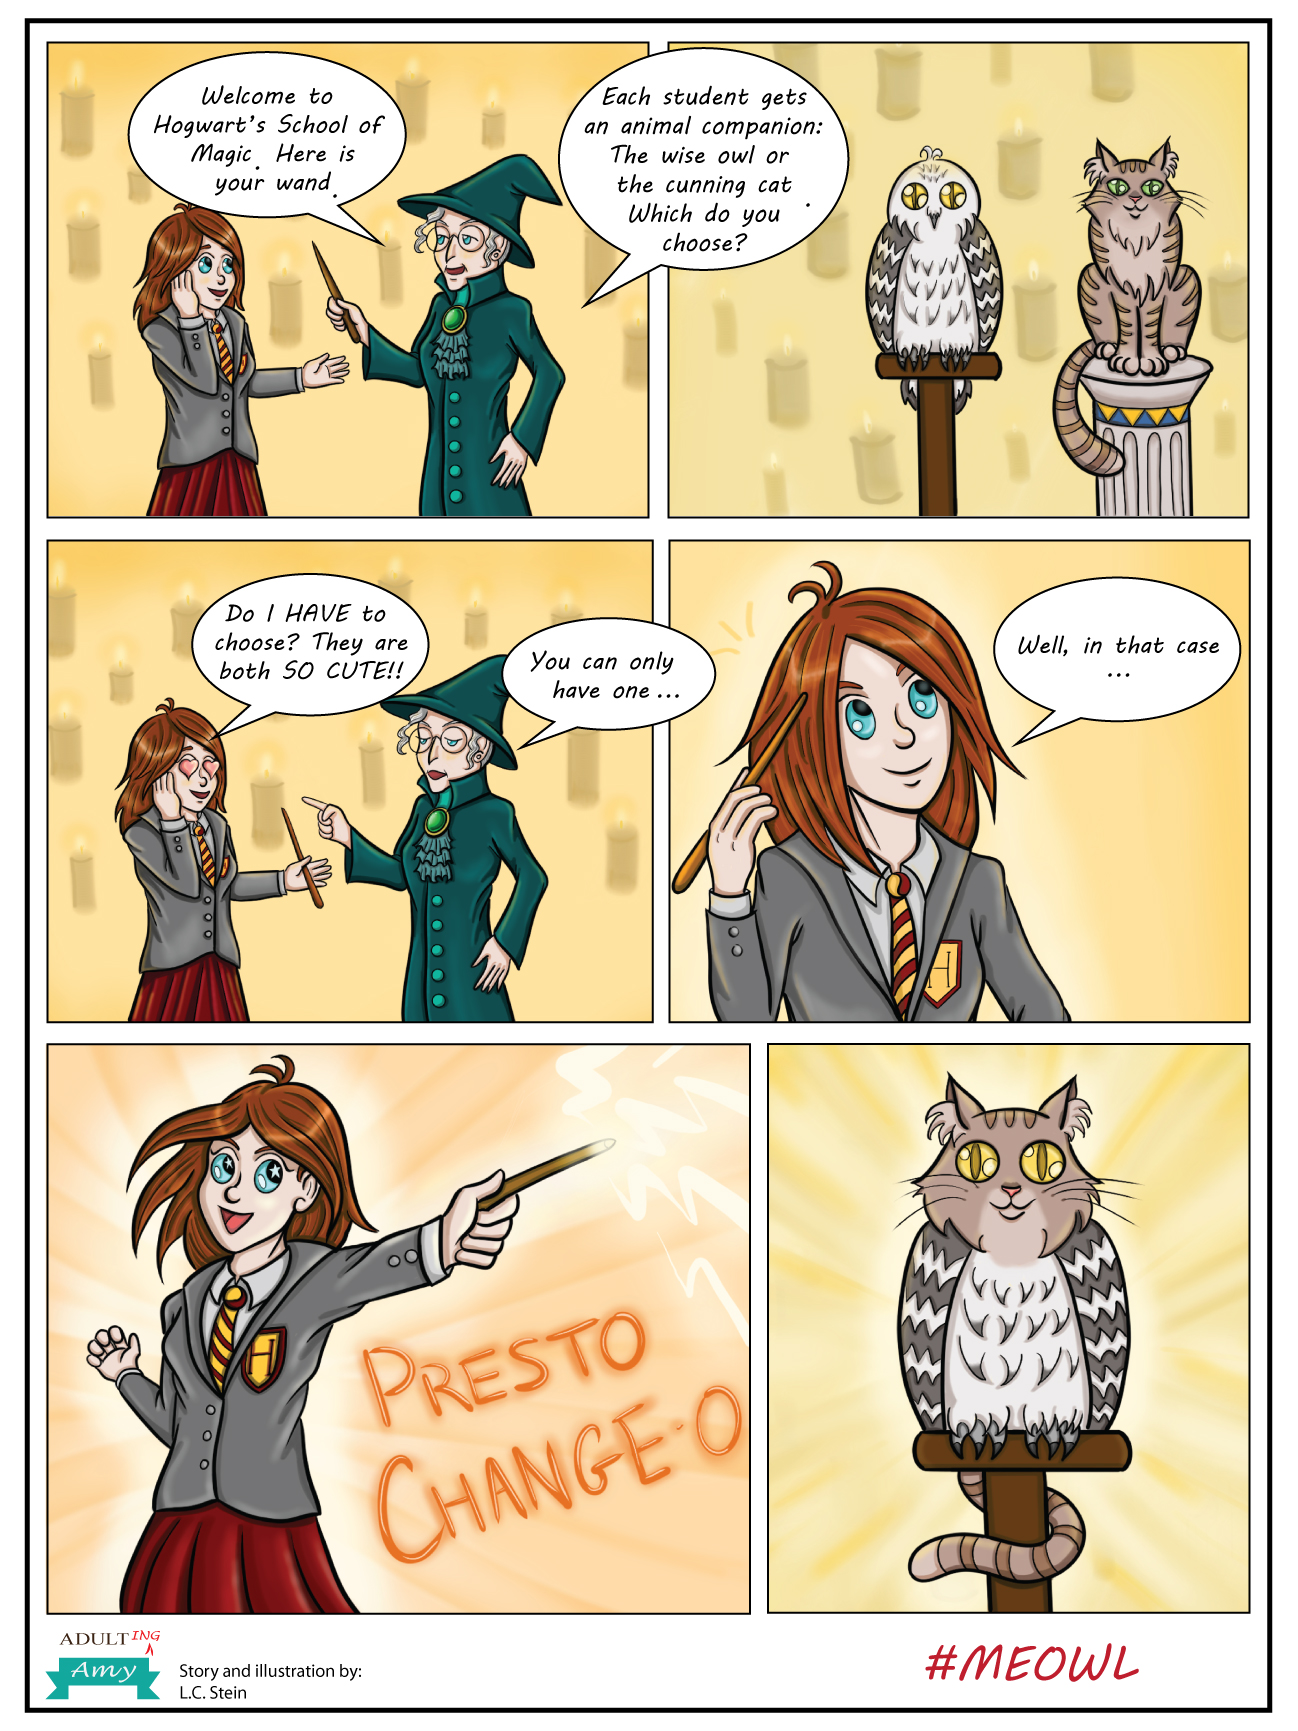 How I Got Kicked Out of Hogwarts